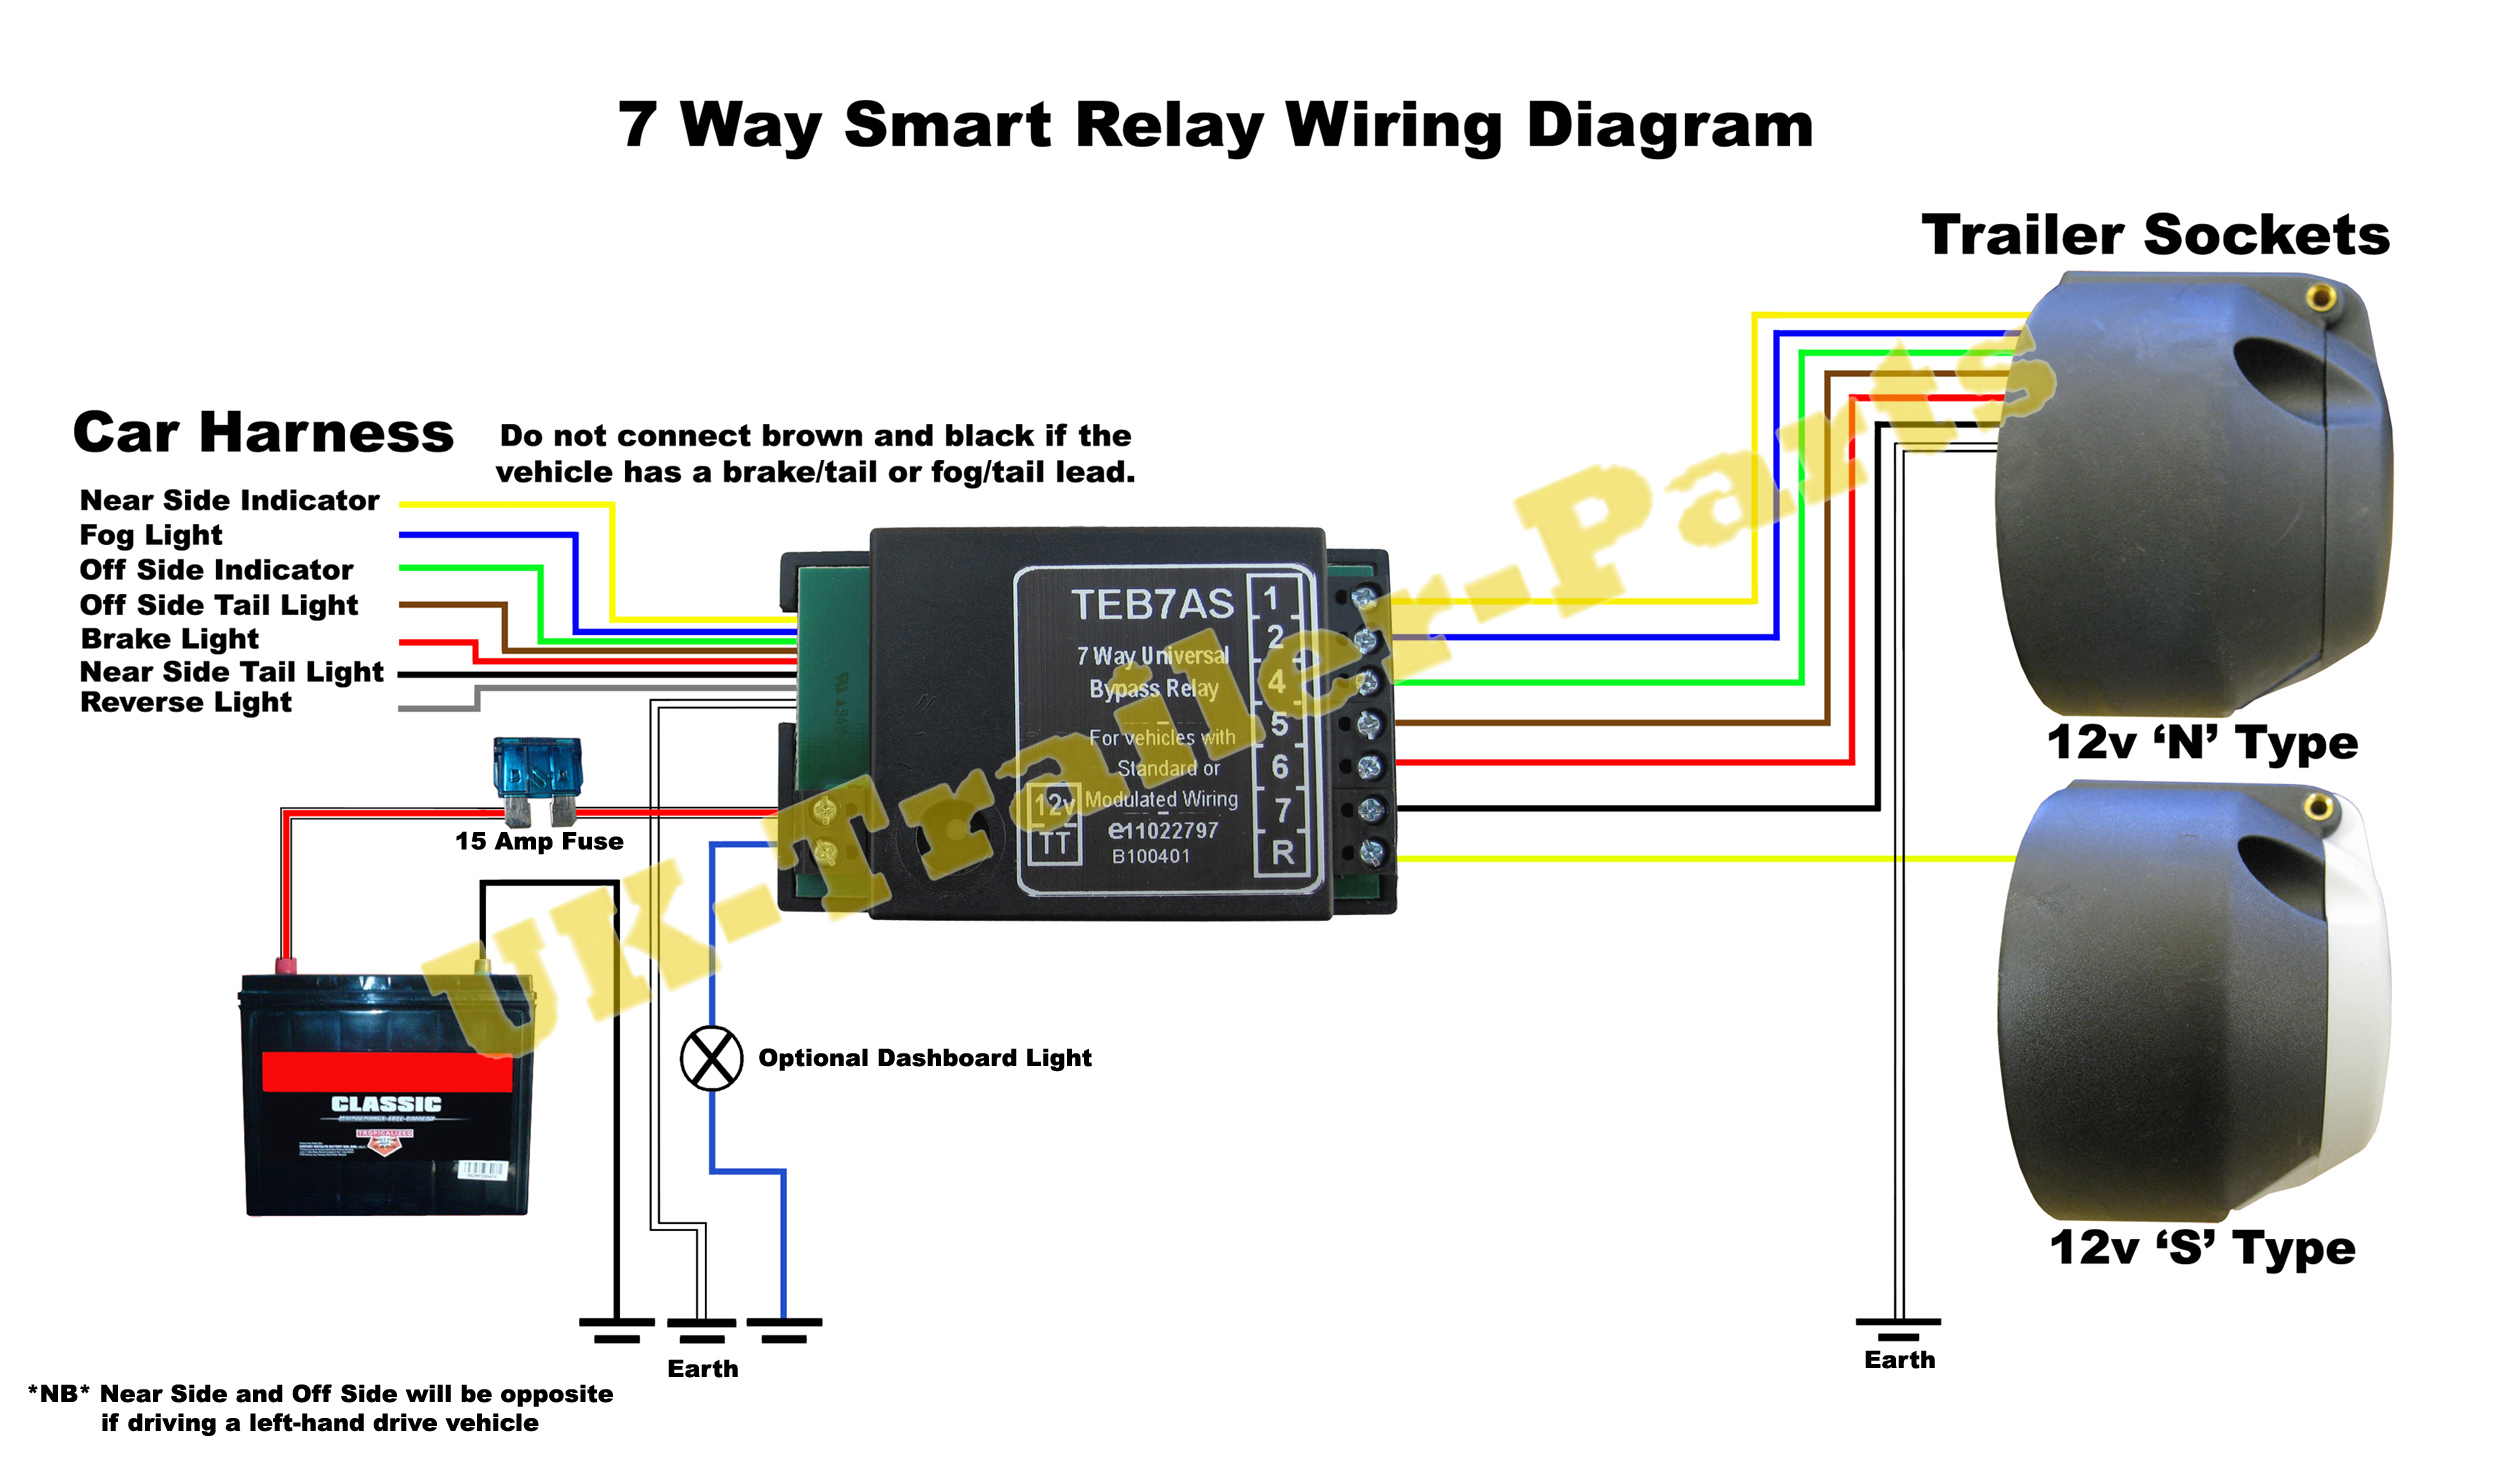 Wiring A 3 Way Lamp Switch Diagram Touch 7 Universal Bypass Relay Uk Trailer Parts Replacing Sensor Part